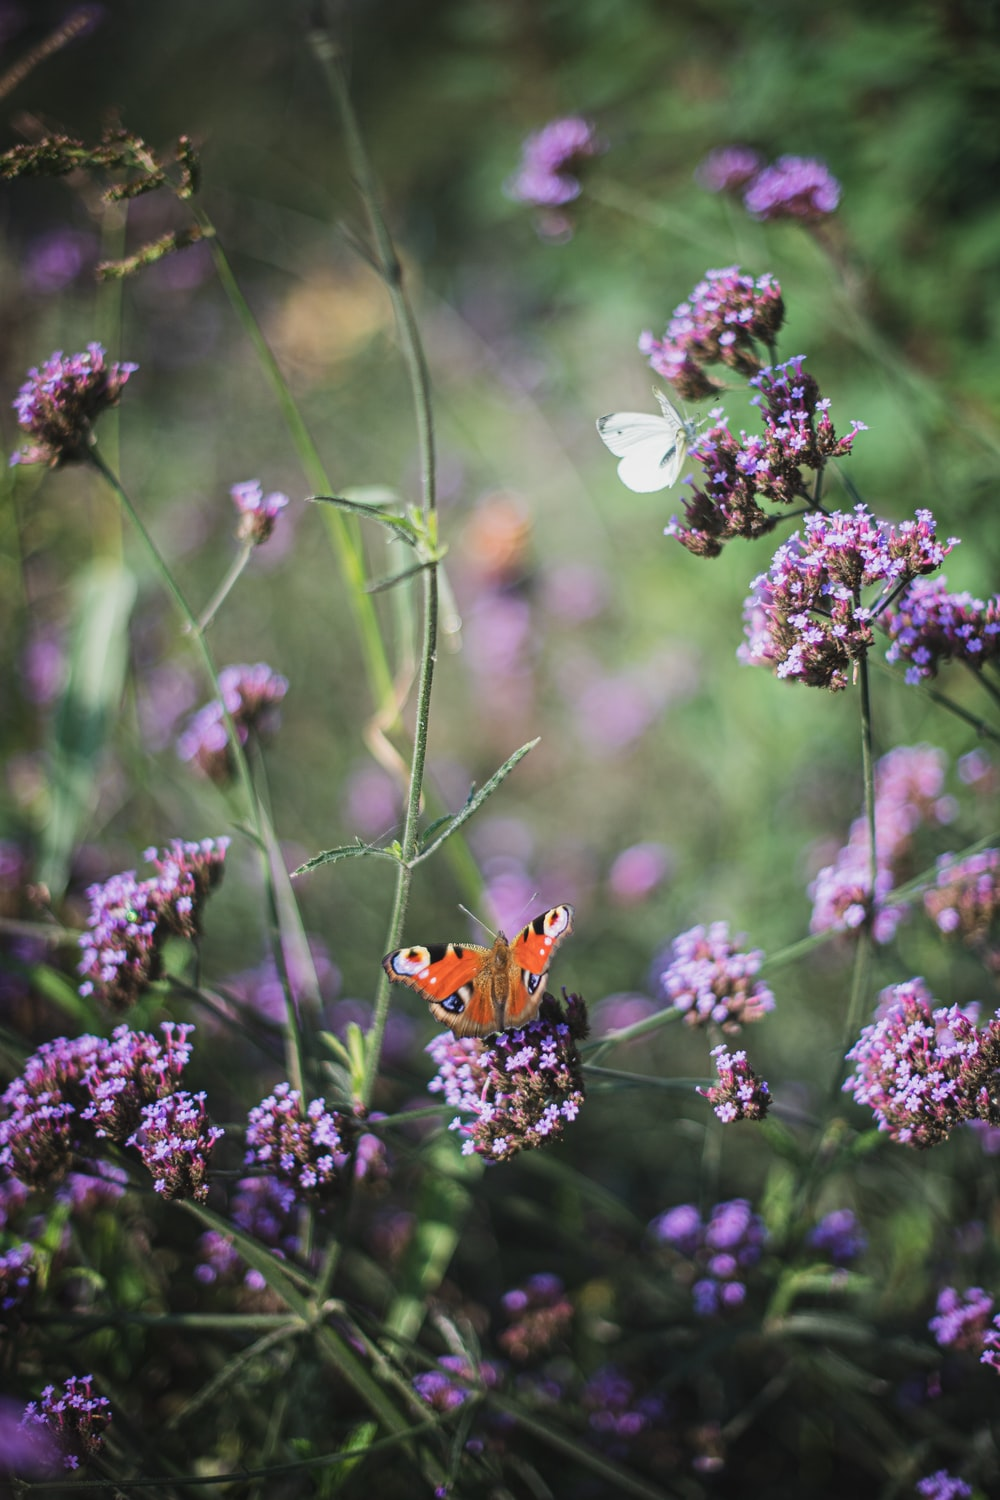 orange butterfly perched on purple flower in close up photography during daytime